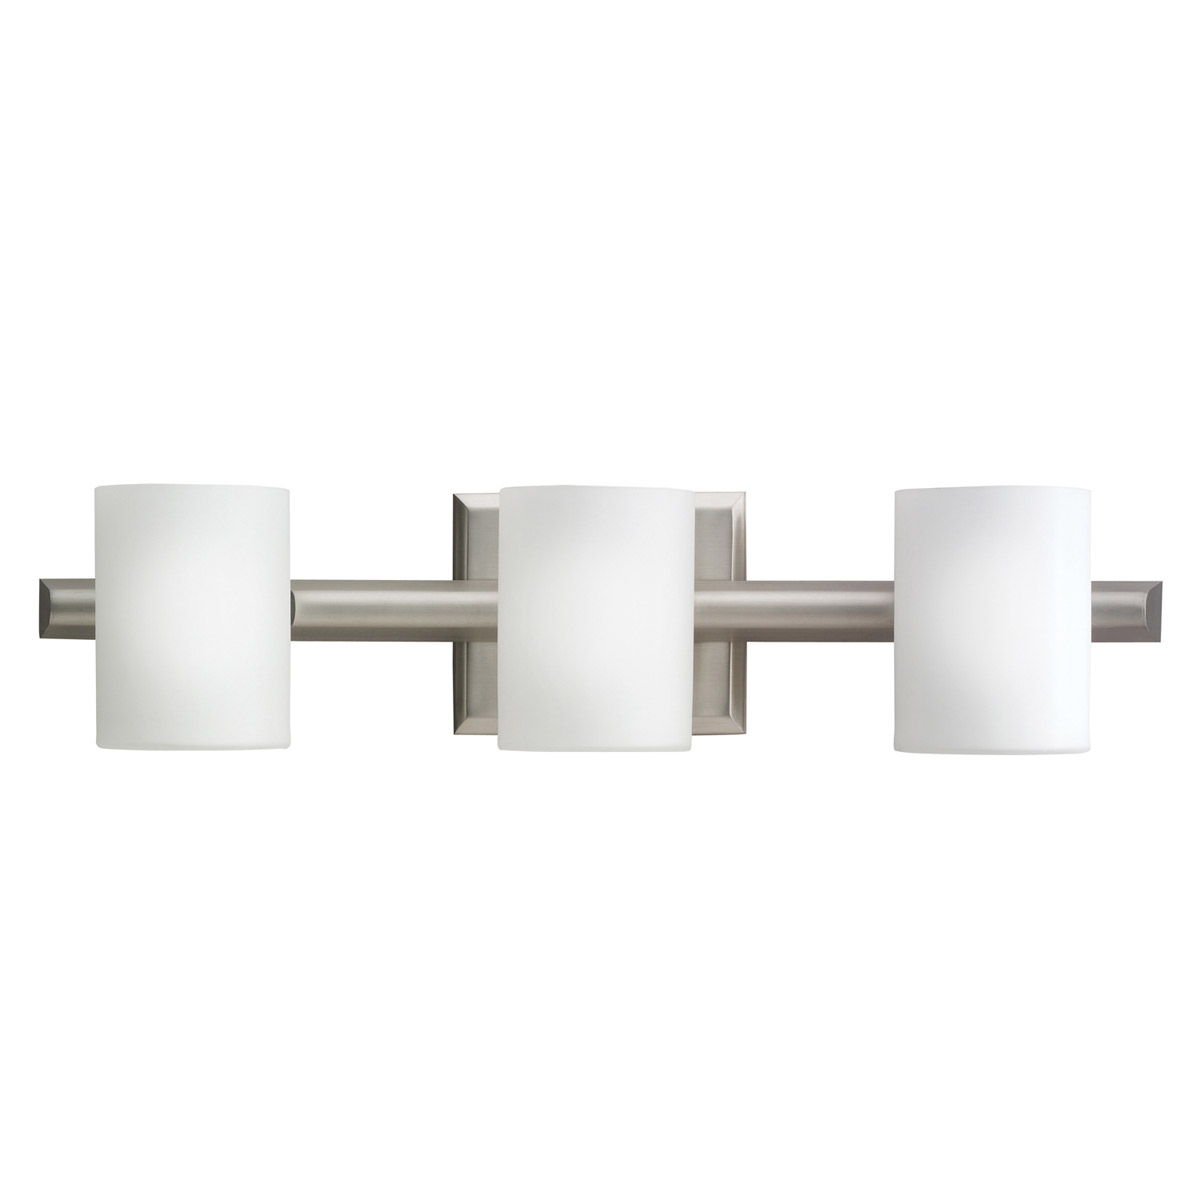 Home gt; Wall Lighting gt; Bathroom Vanity Lights gt; Kichler 5967NI